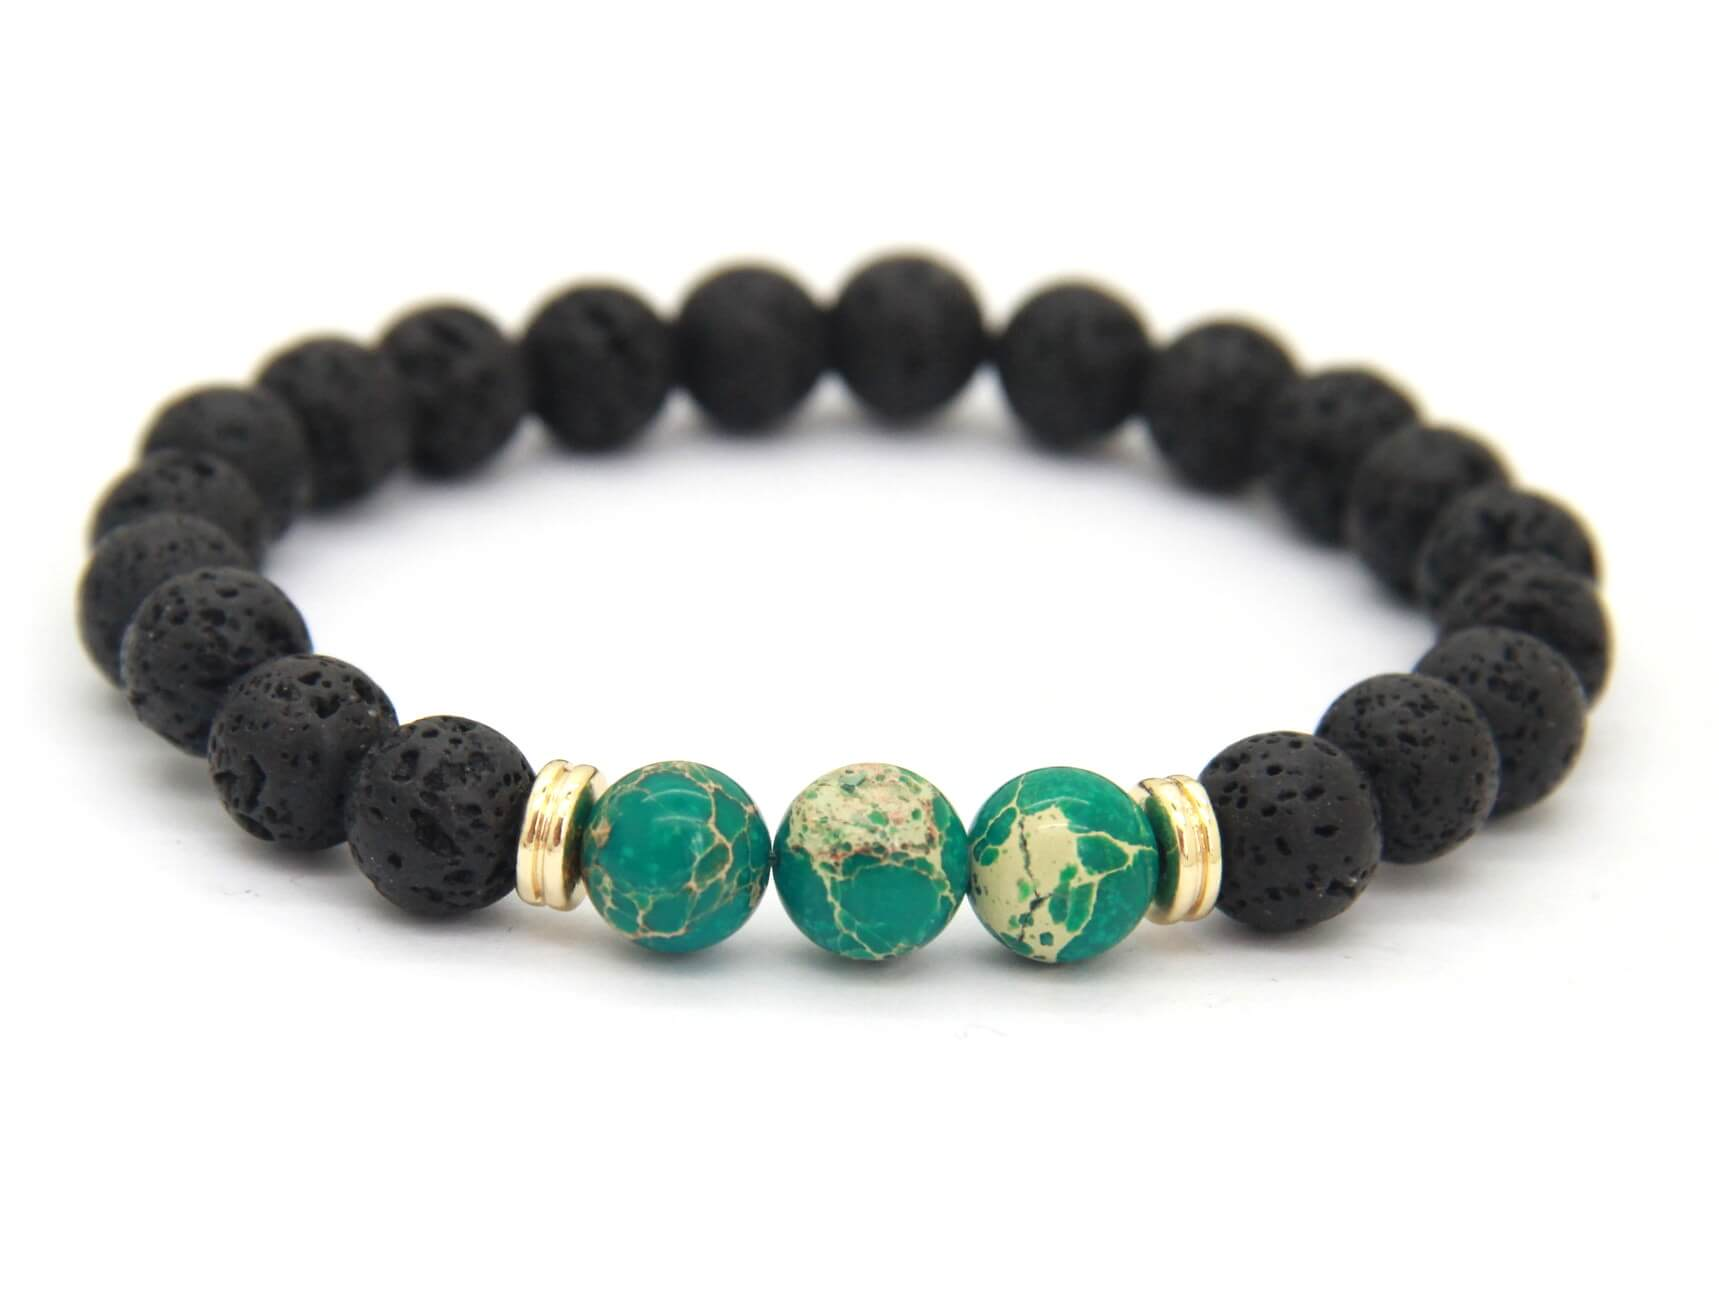 bracelet pin gemstone and green genuine by for stone onyx men mamisgemstudio black malachite s